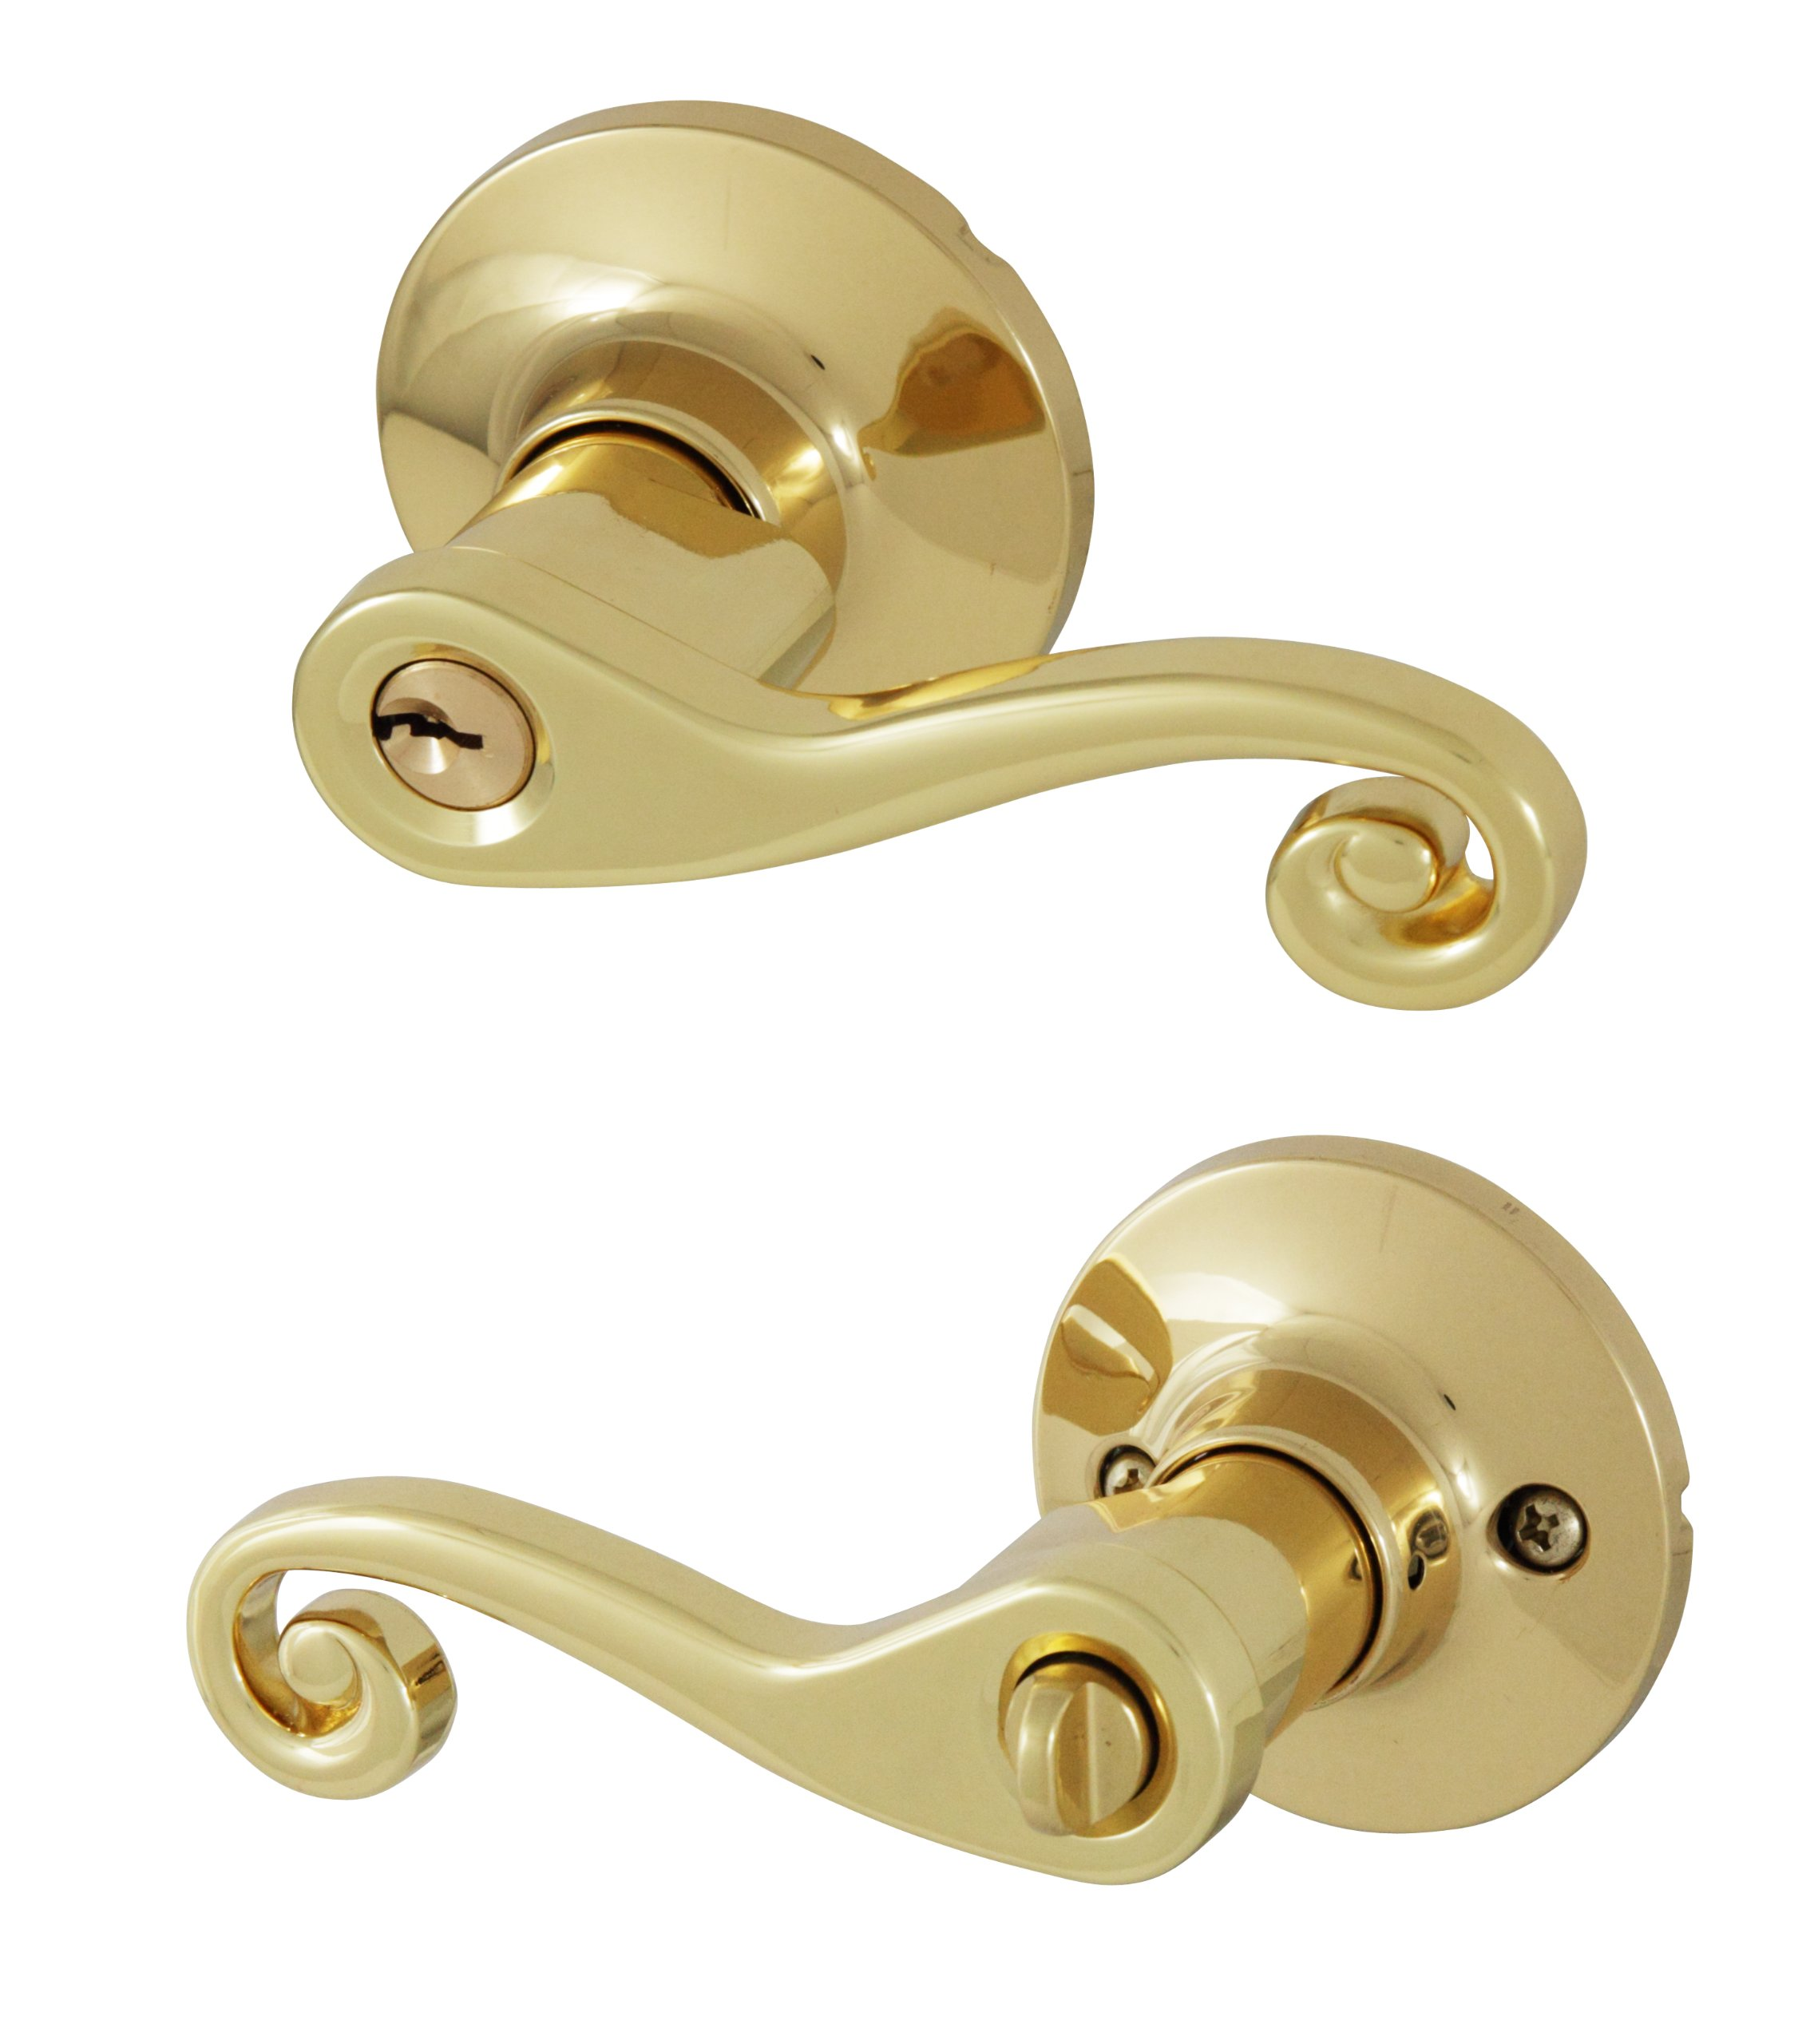 Honeywell 8108001 Scroll Entry Door Lever, Polished Brass